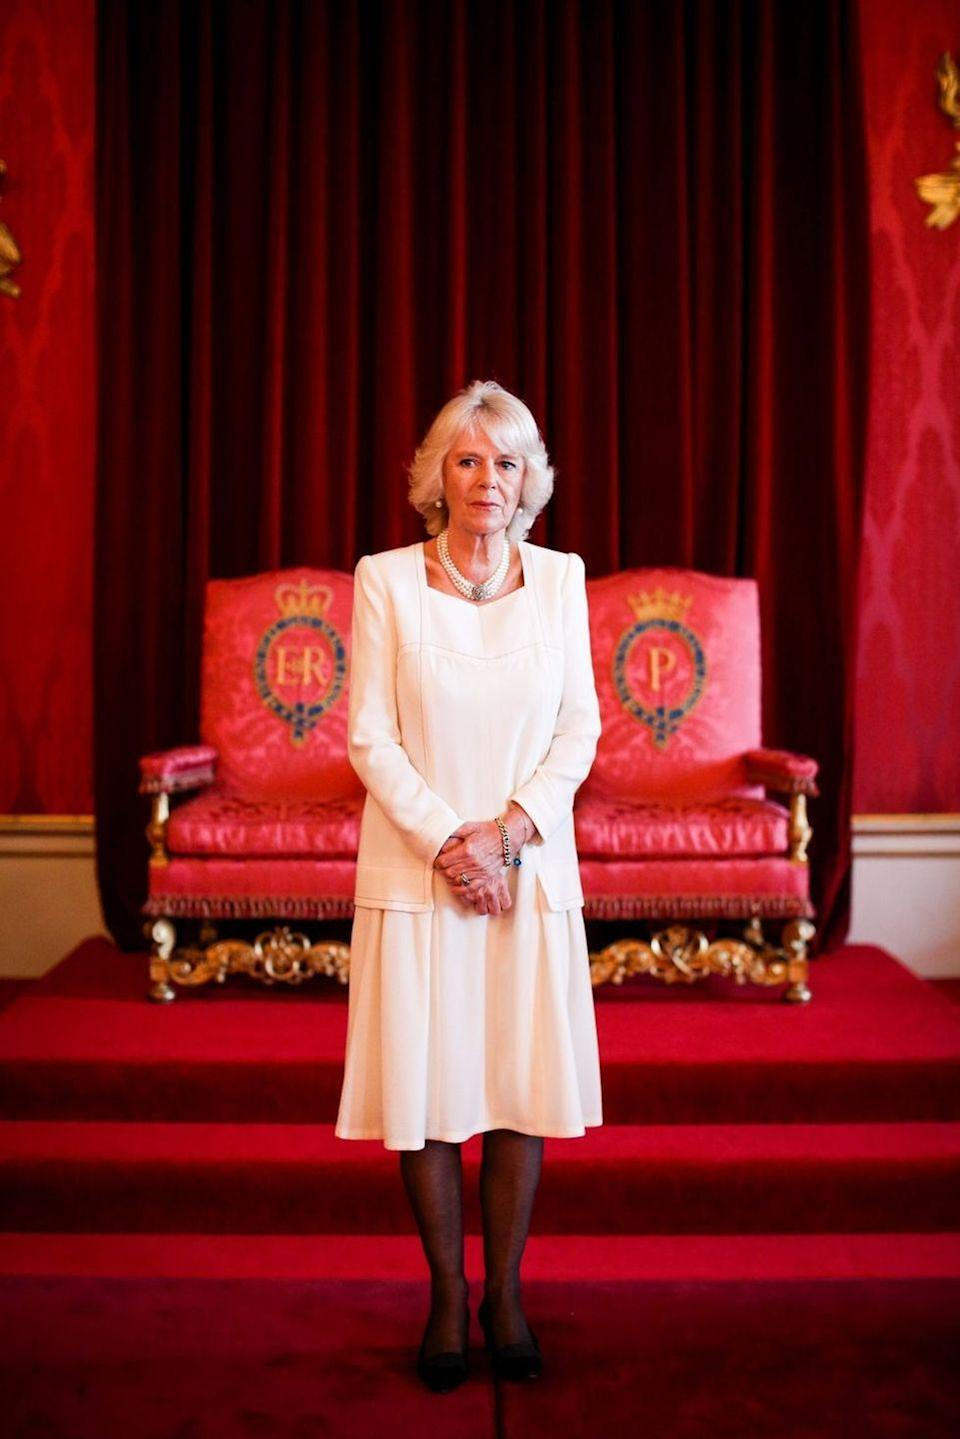 <p>Camilla hosted a reception for participants in an essay competition at Buckingham Palace wearing this understated cream dress with black hosiery and her three-strand pearl necklace. </p>